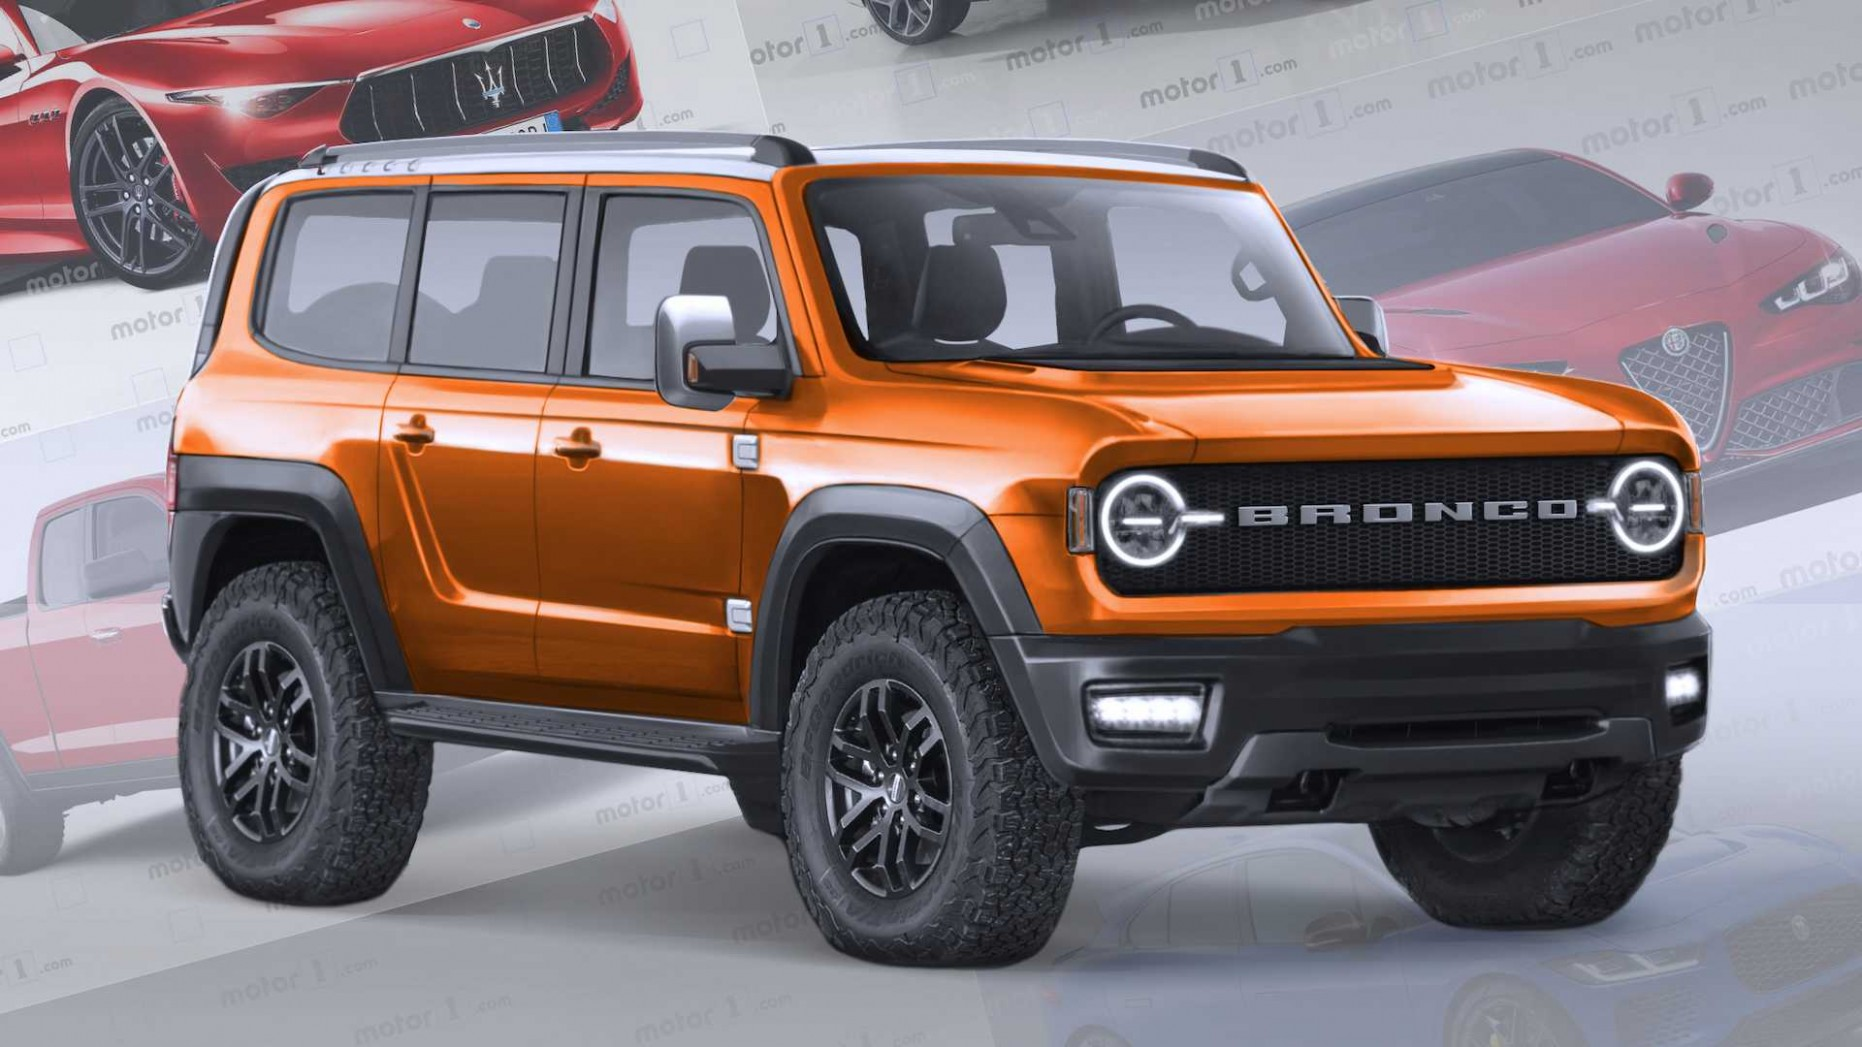 3 New Models Guide: 3 Cars, Trucks, And SUVs Coming Soon